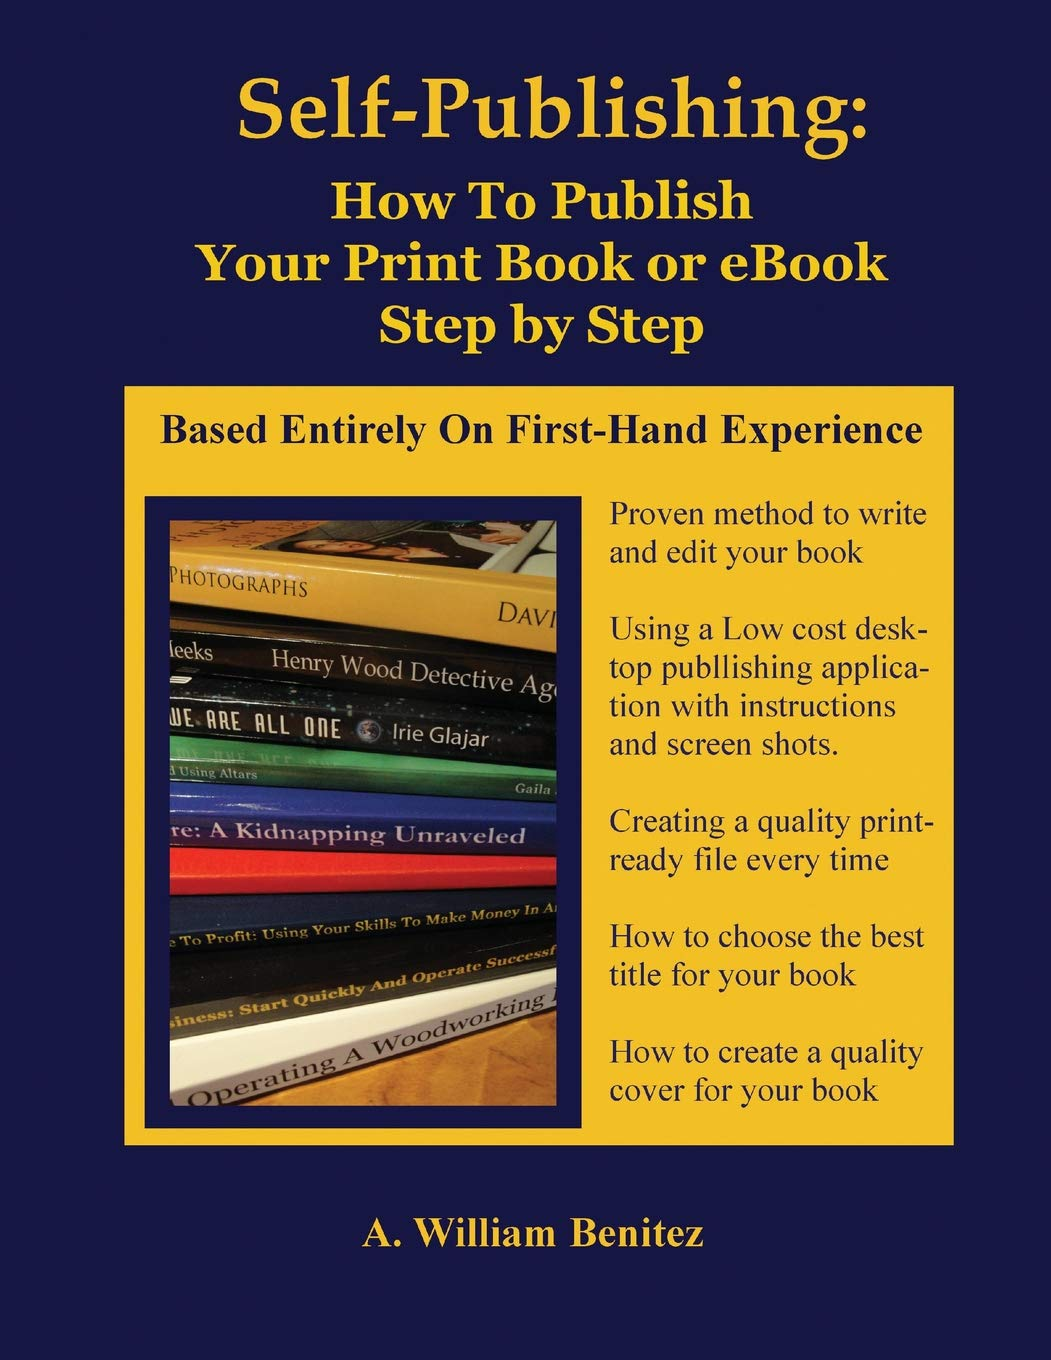 Self Publishing: How to Publish Your Print Book or eBook Step by Step (Volume 1) PDF